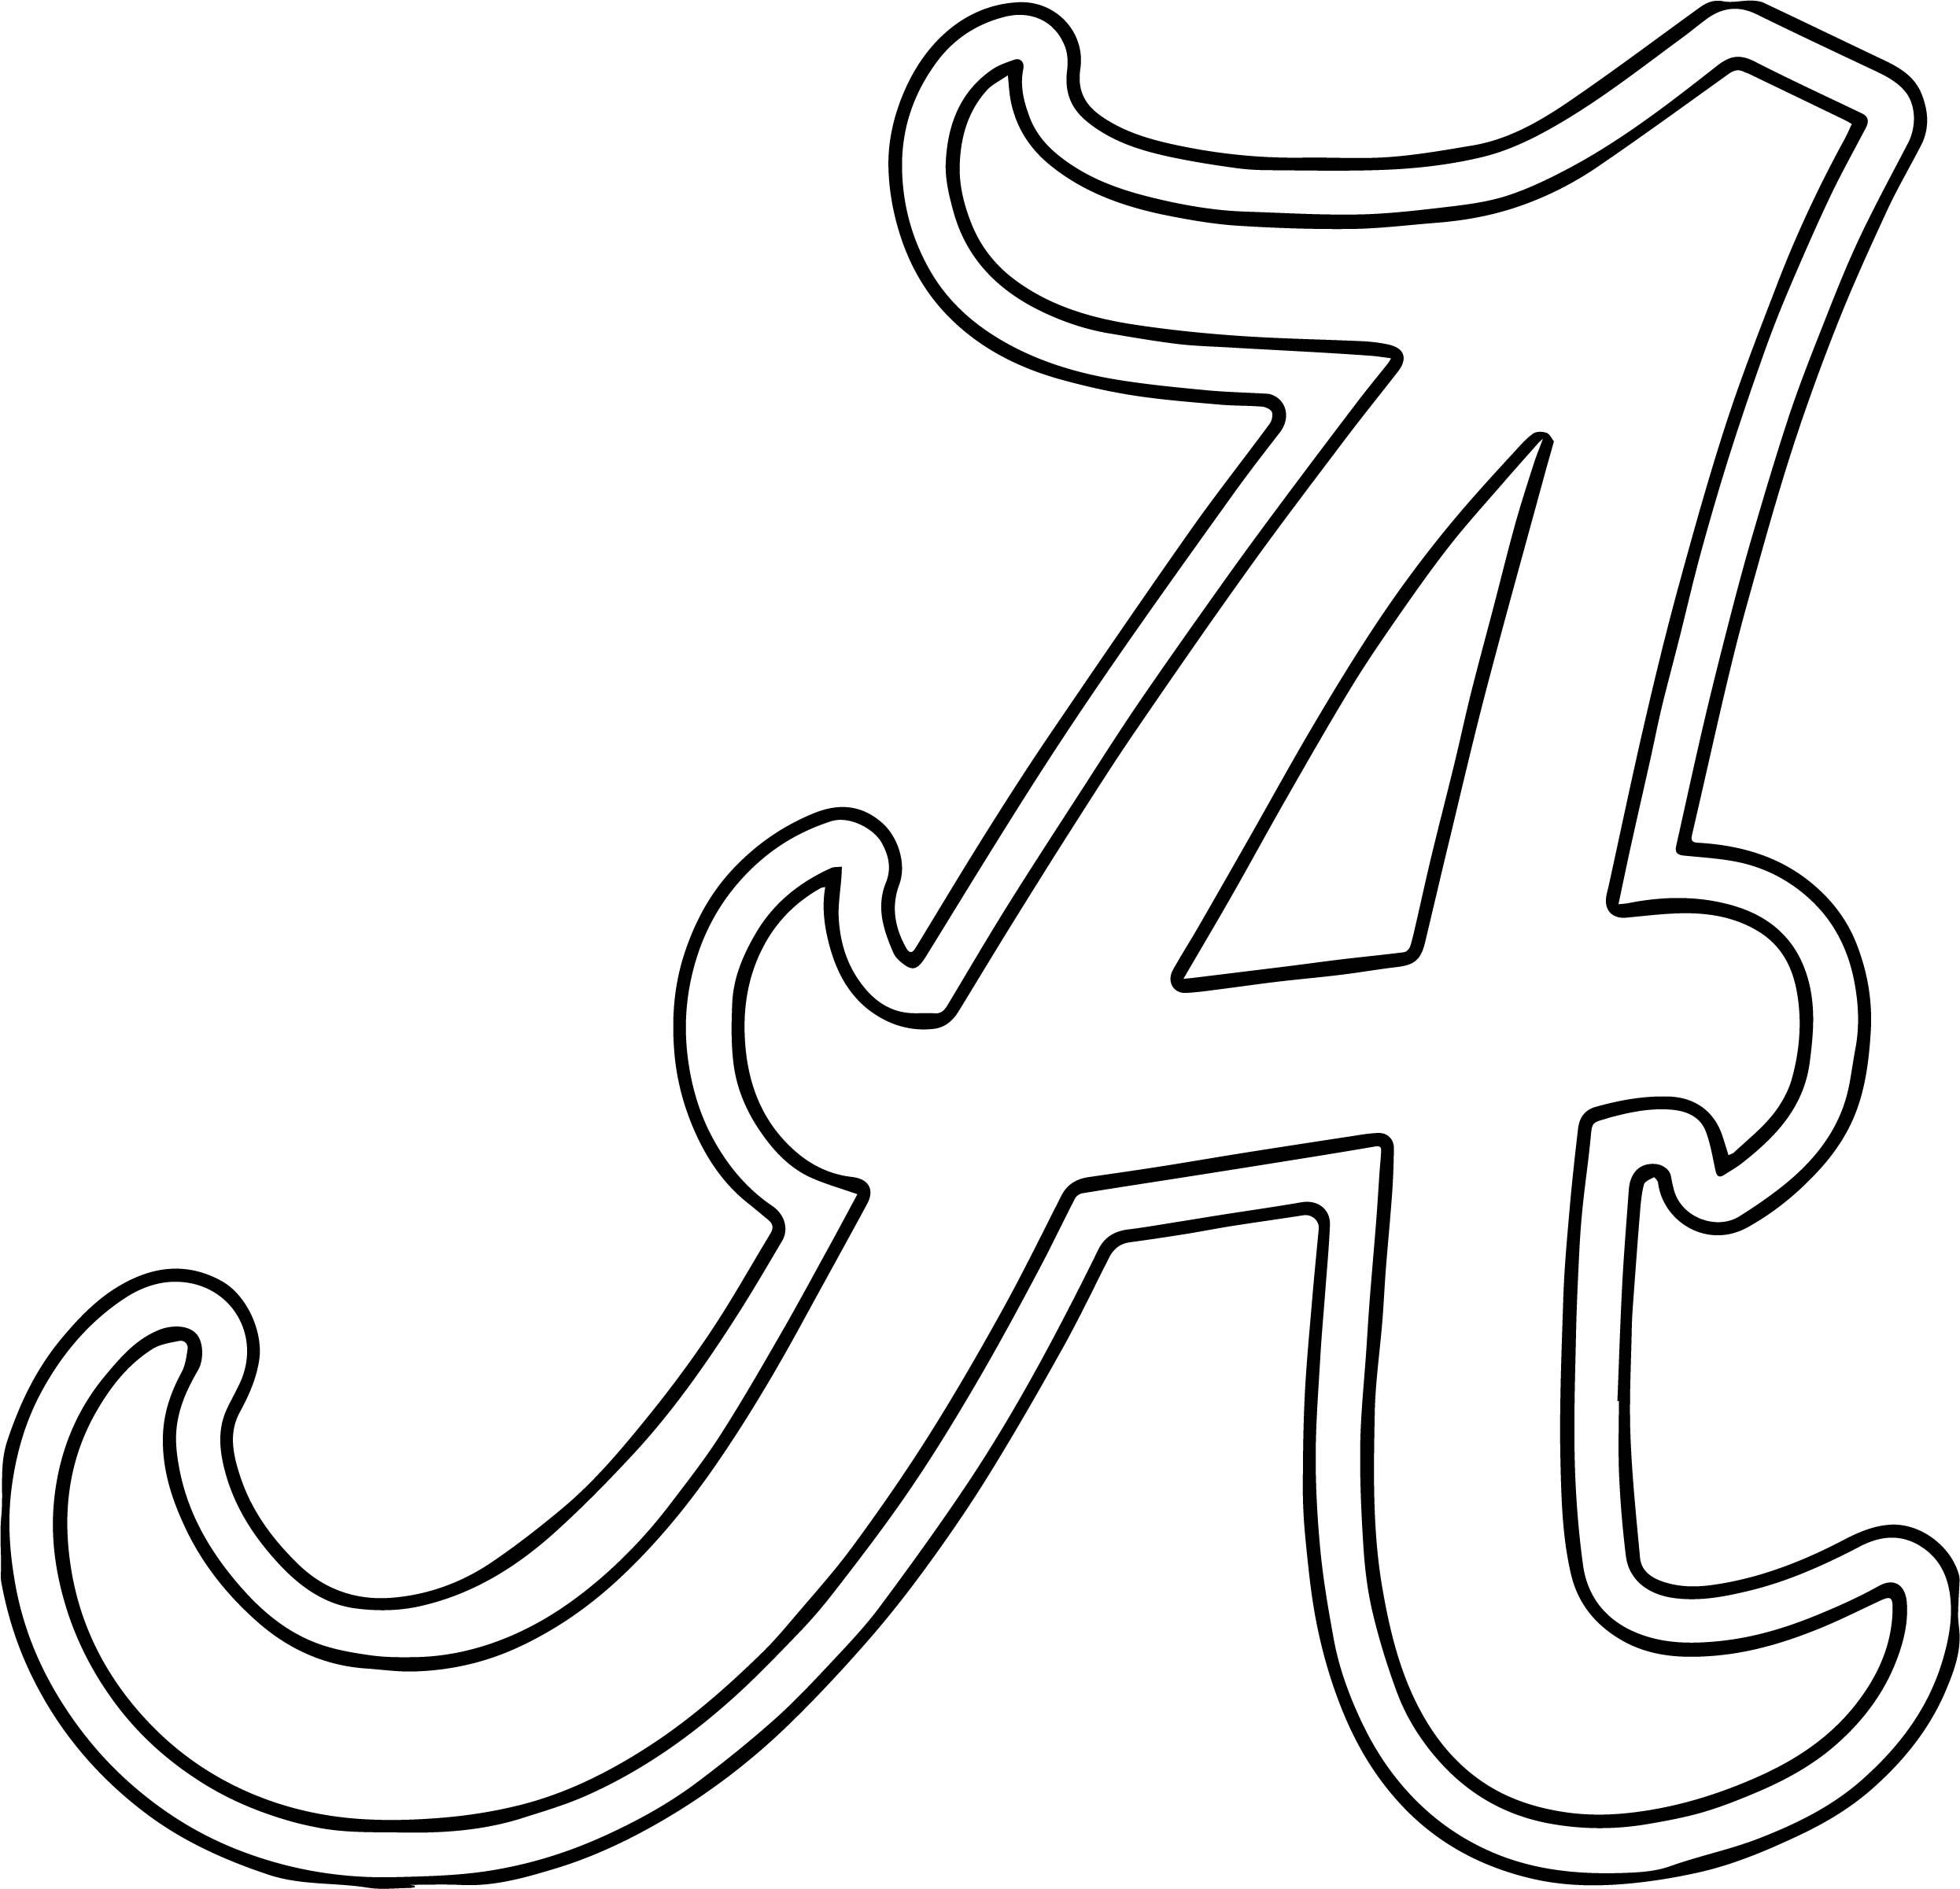 Alabama University Of A Text Coloring Page